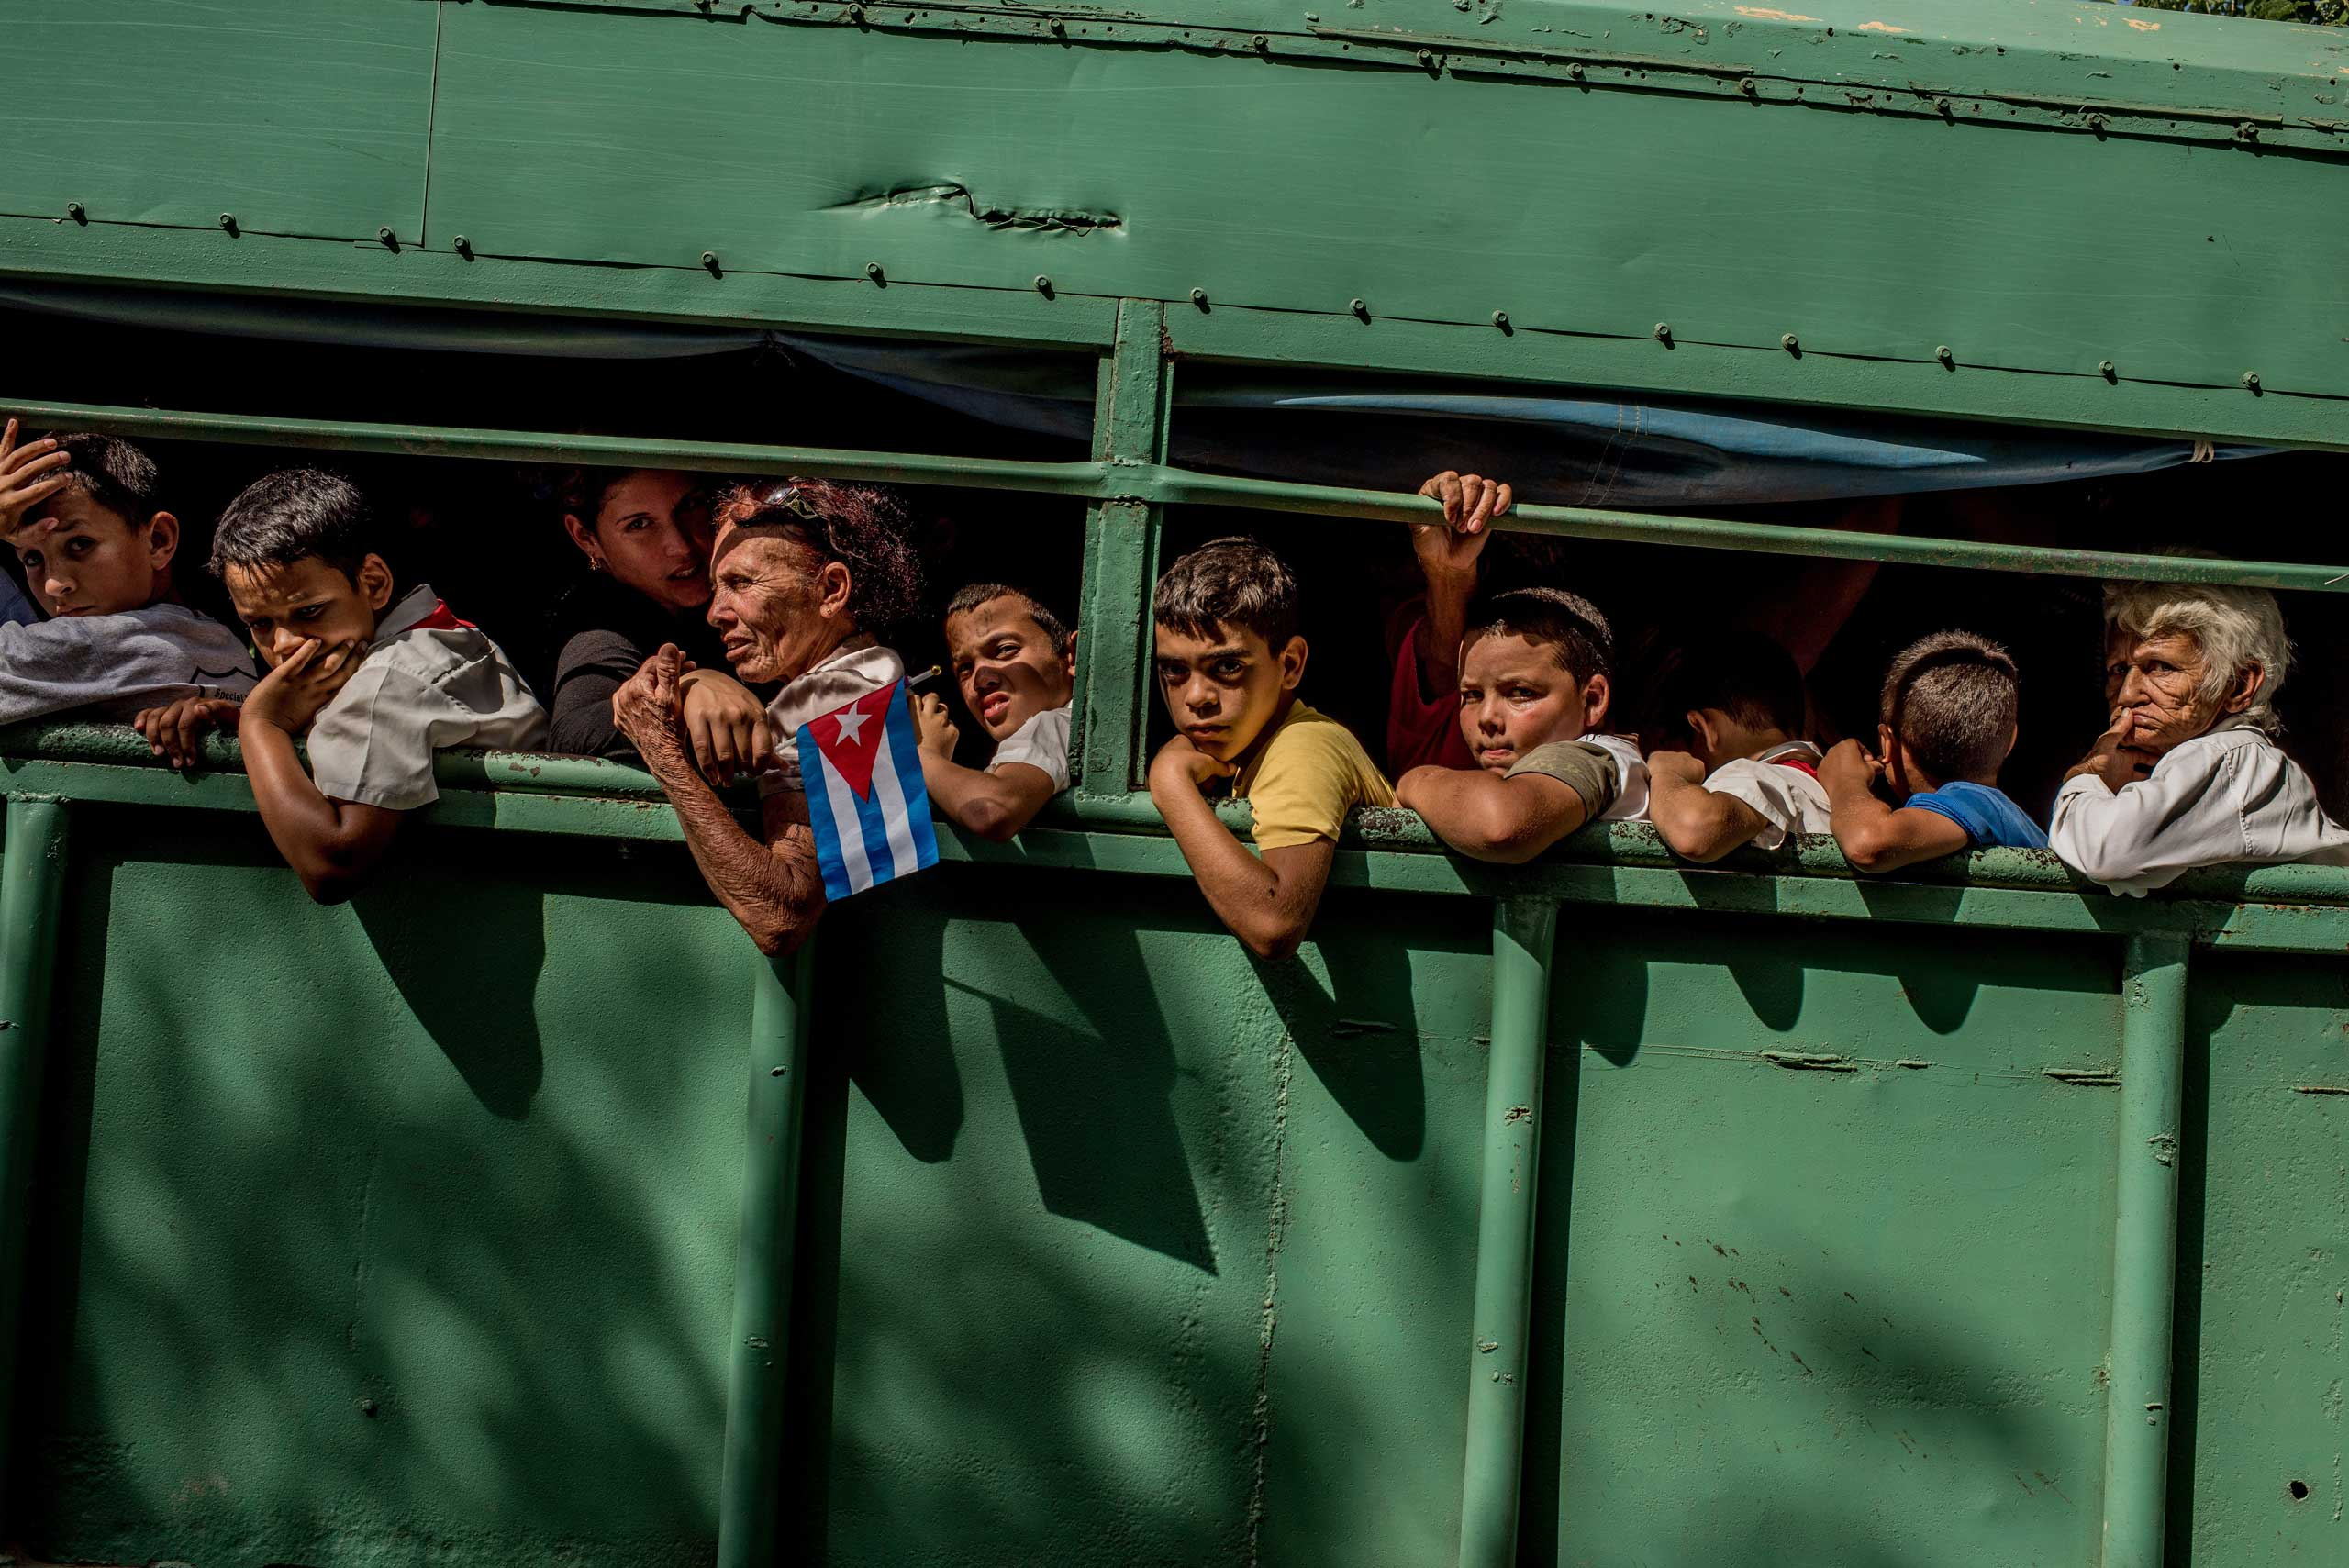 Trucks carried students home after the carriage carrying Fidel's ashes passed in Las Tunas Province, Cuba on Dec. 2, 2016.